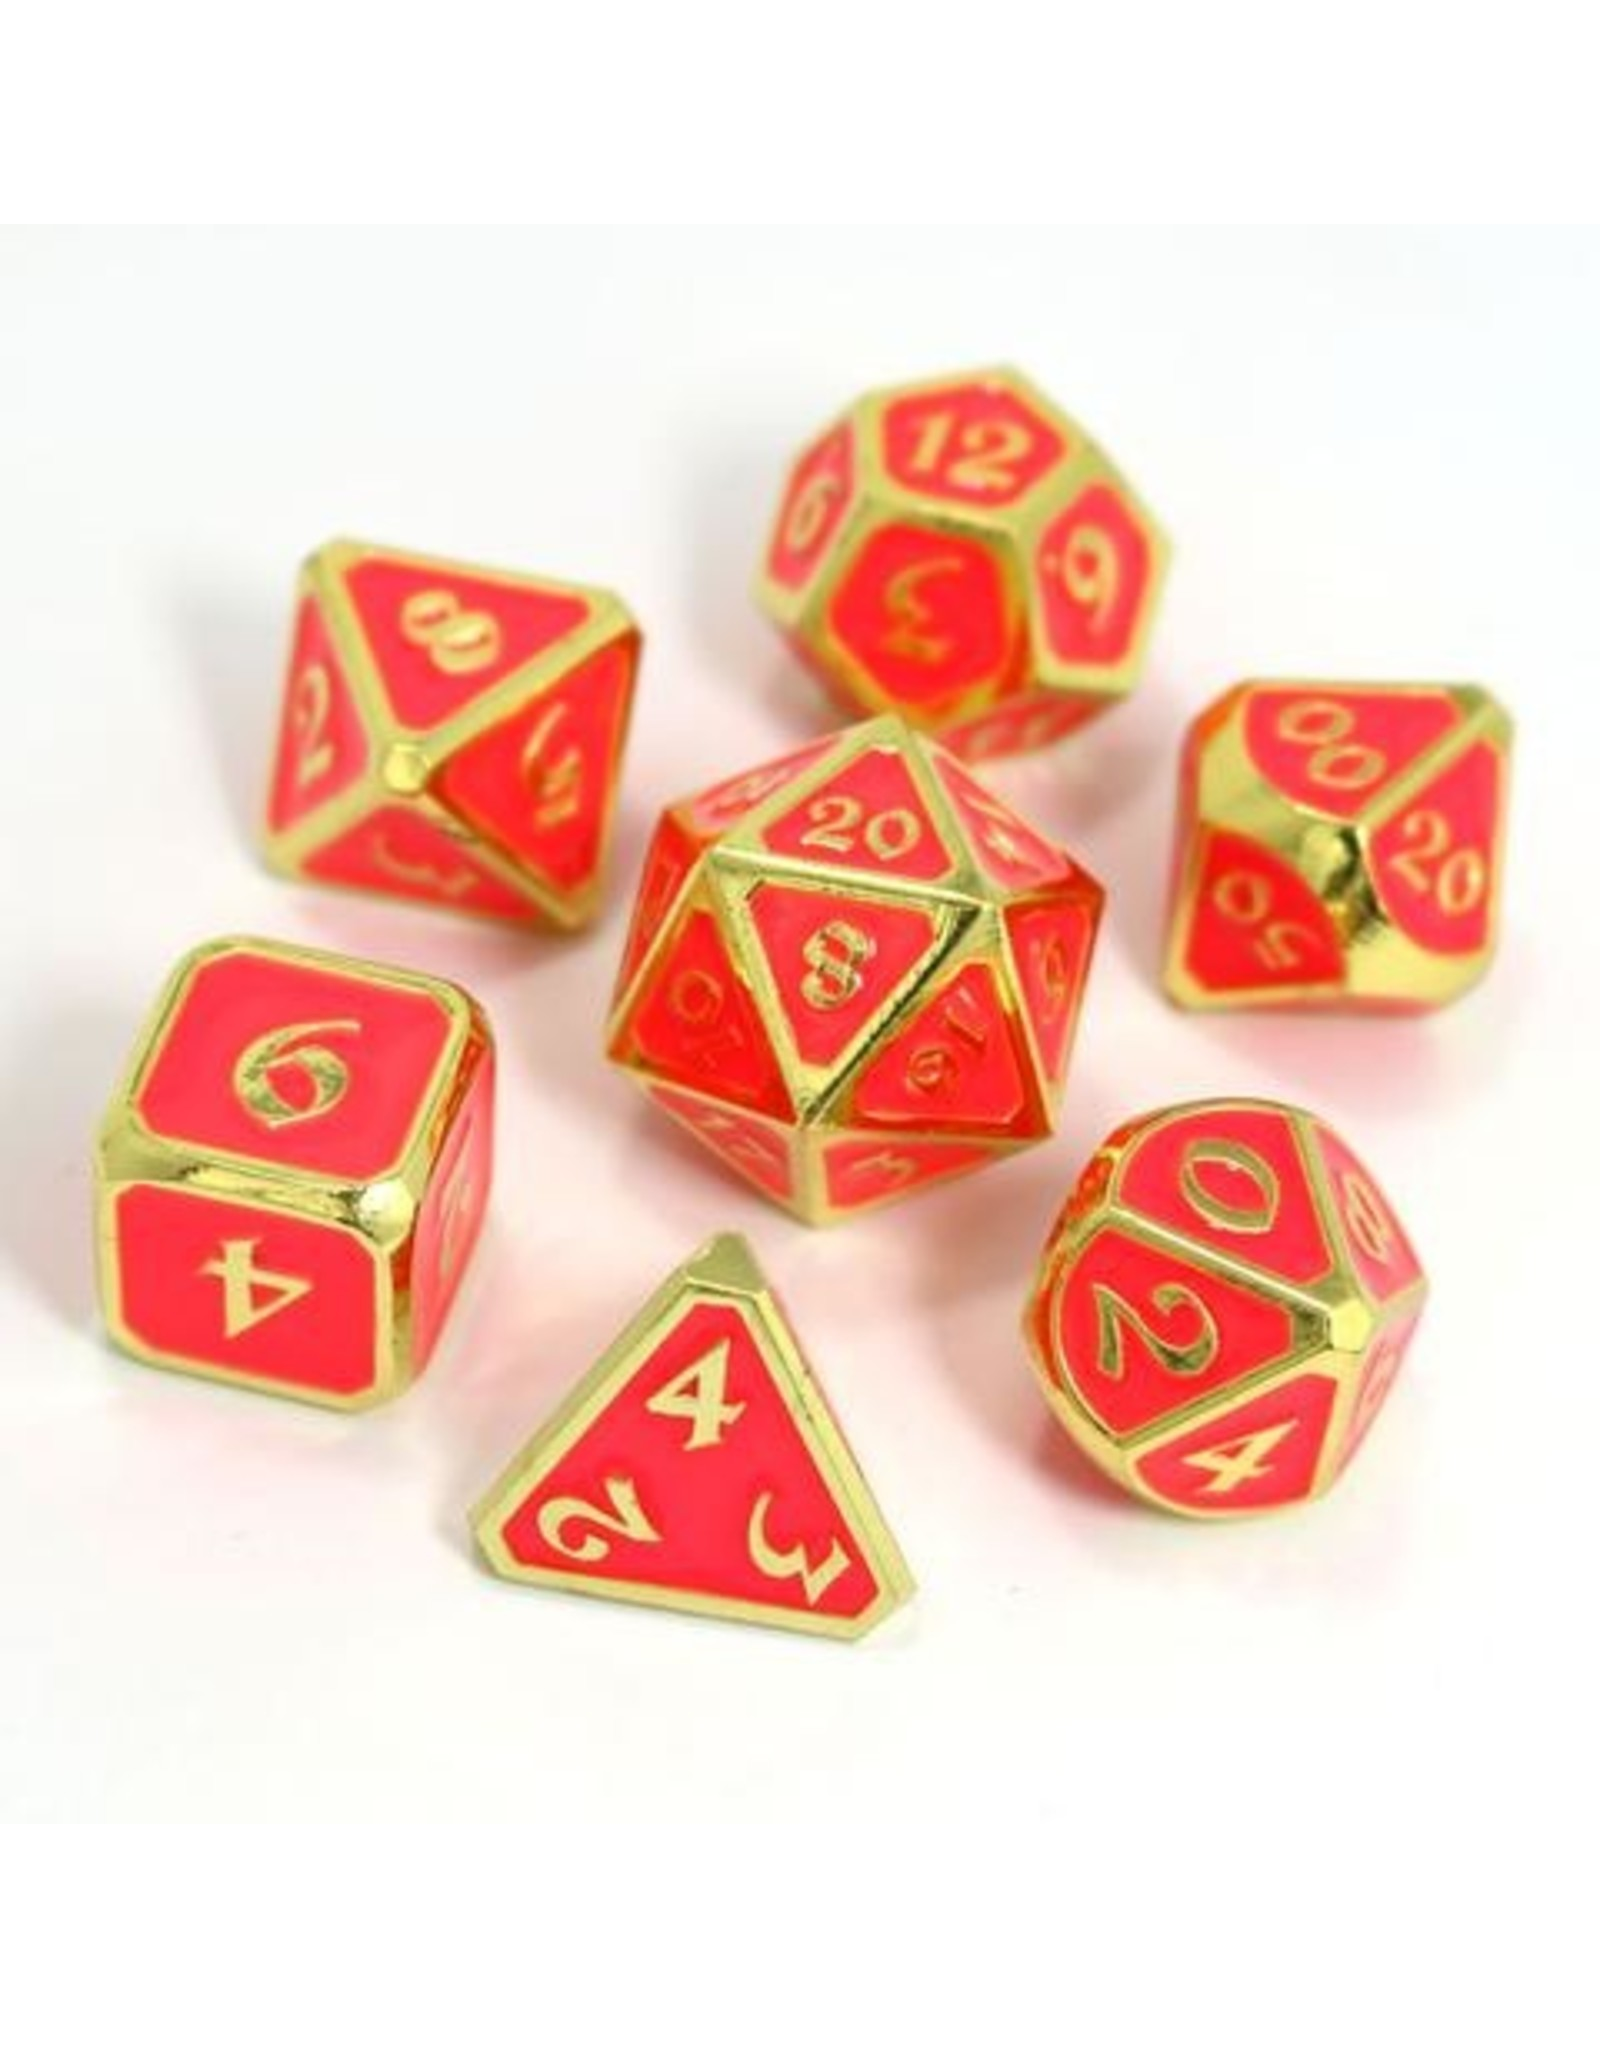 DIE HARD DICE DIE HARD DICE 7 CT FORGE DICE SET AFTERDARK NEON BLOOM